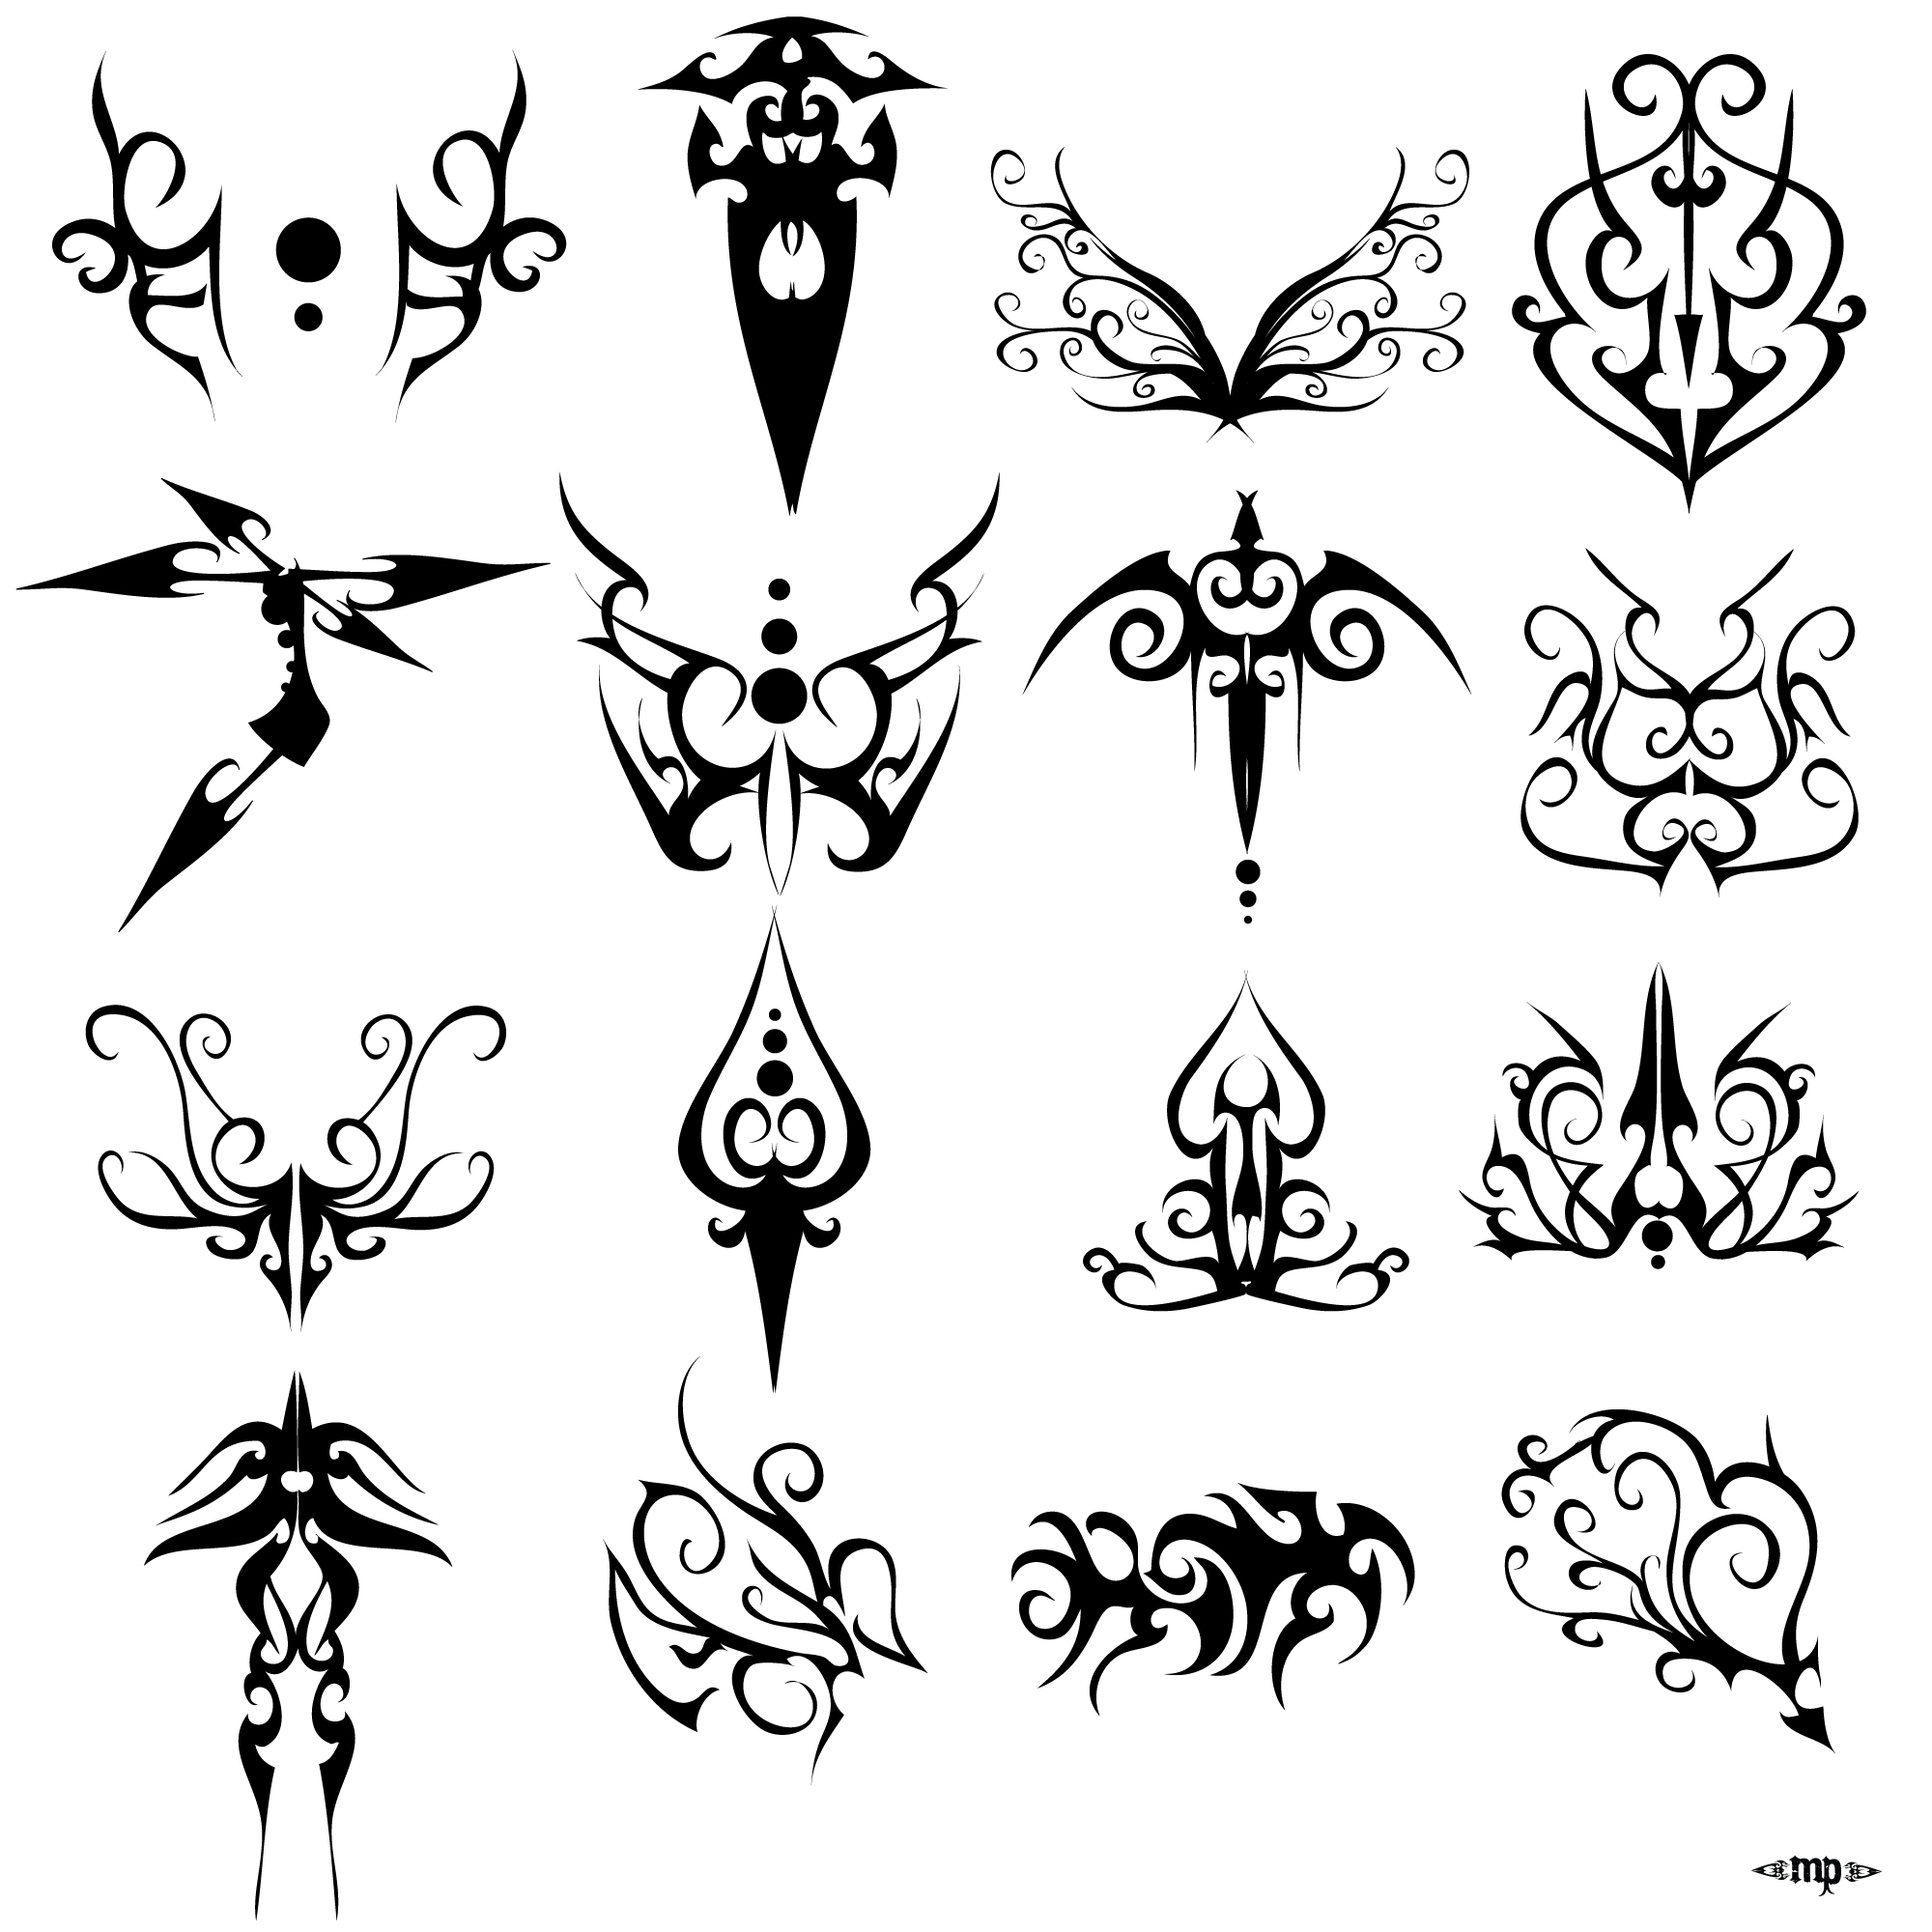 Some Tattoo Design Again... By MPtribe On DeviantArt